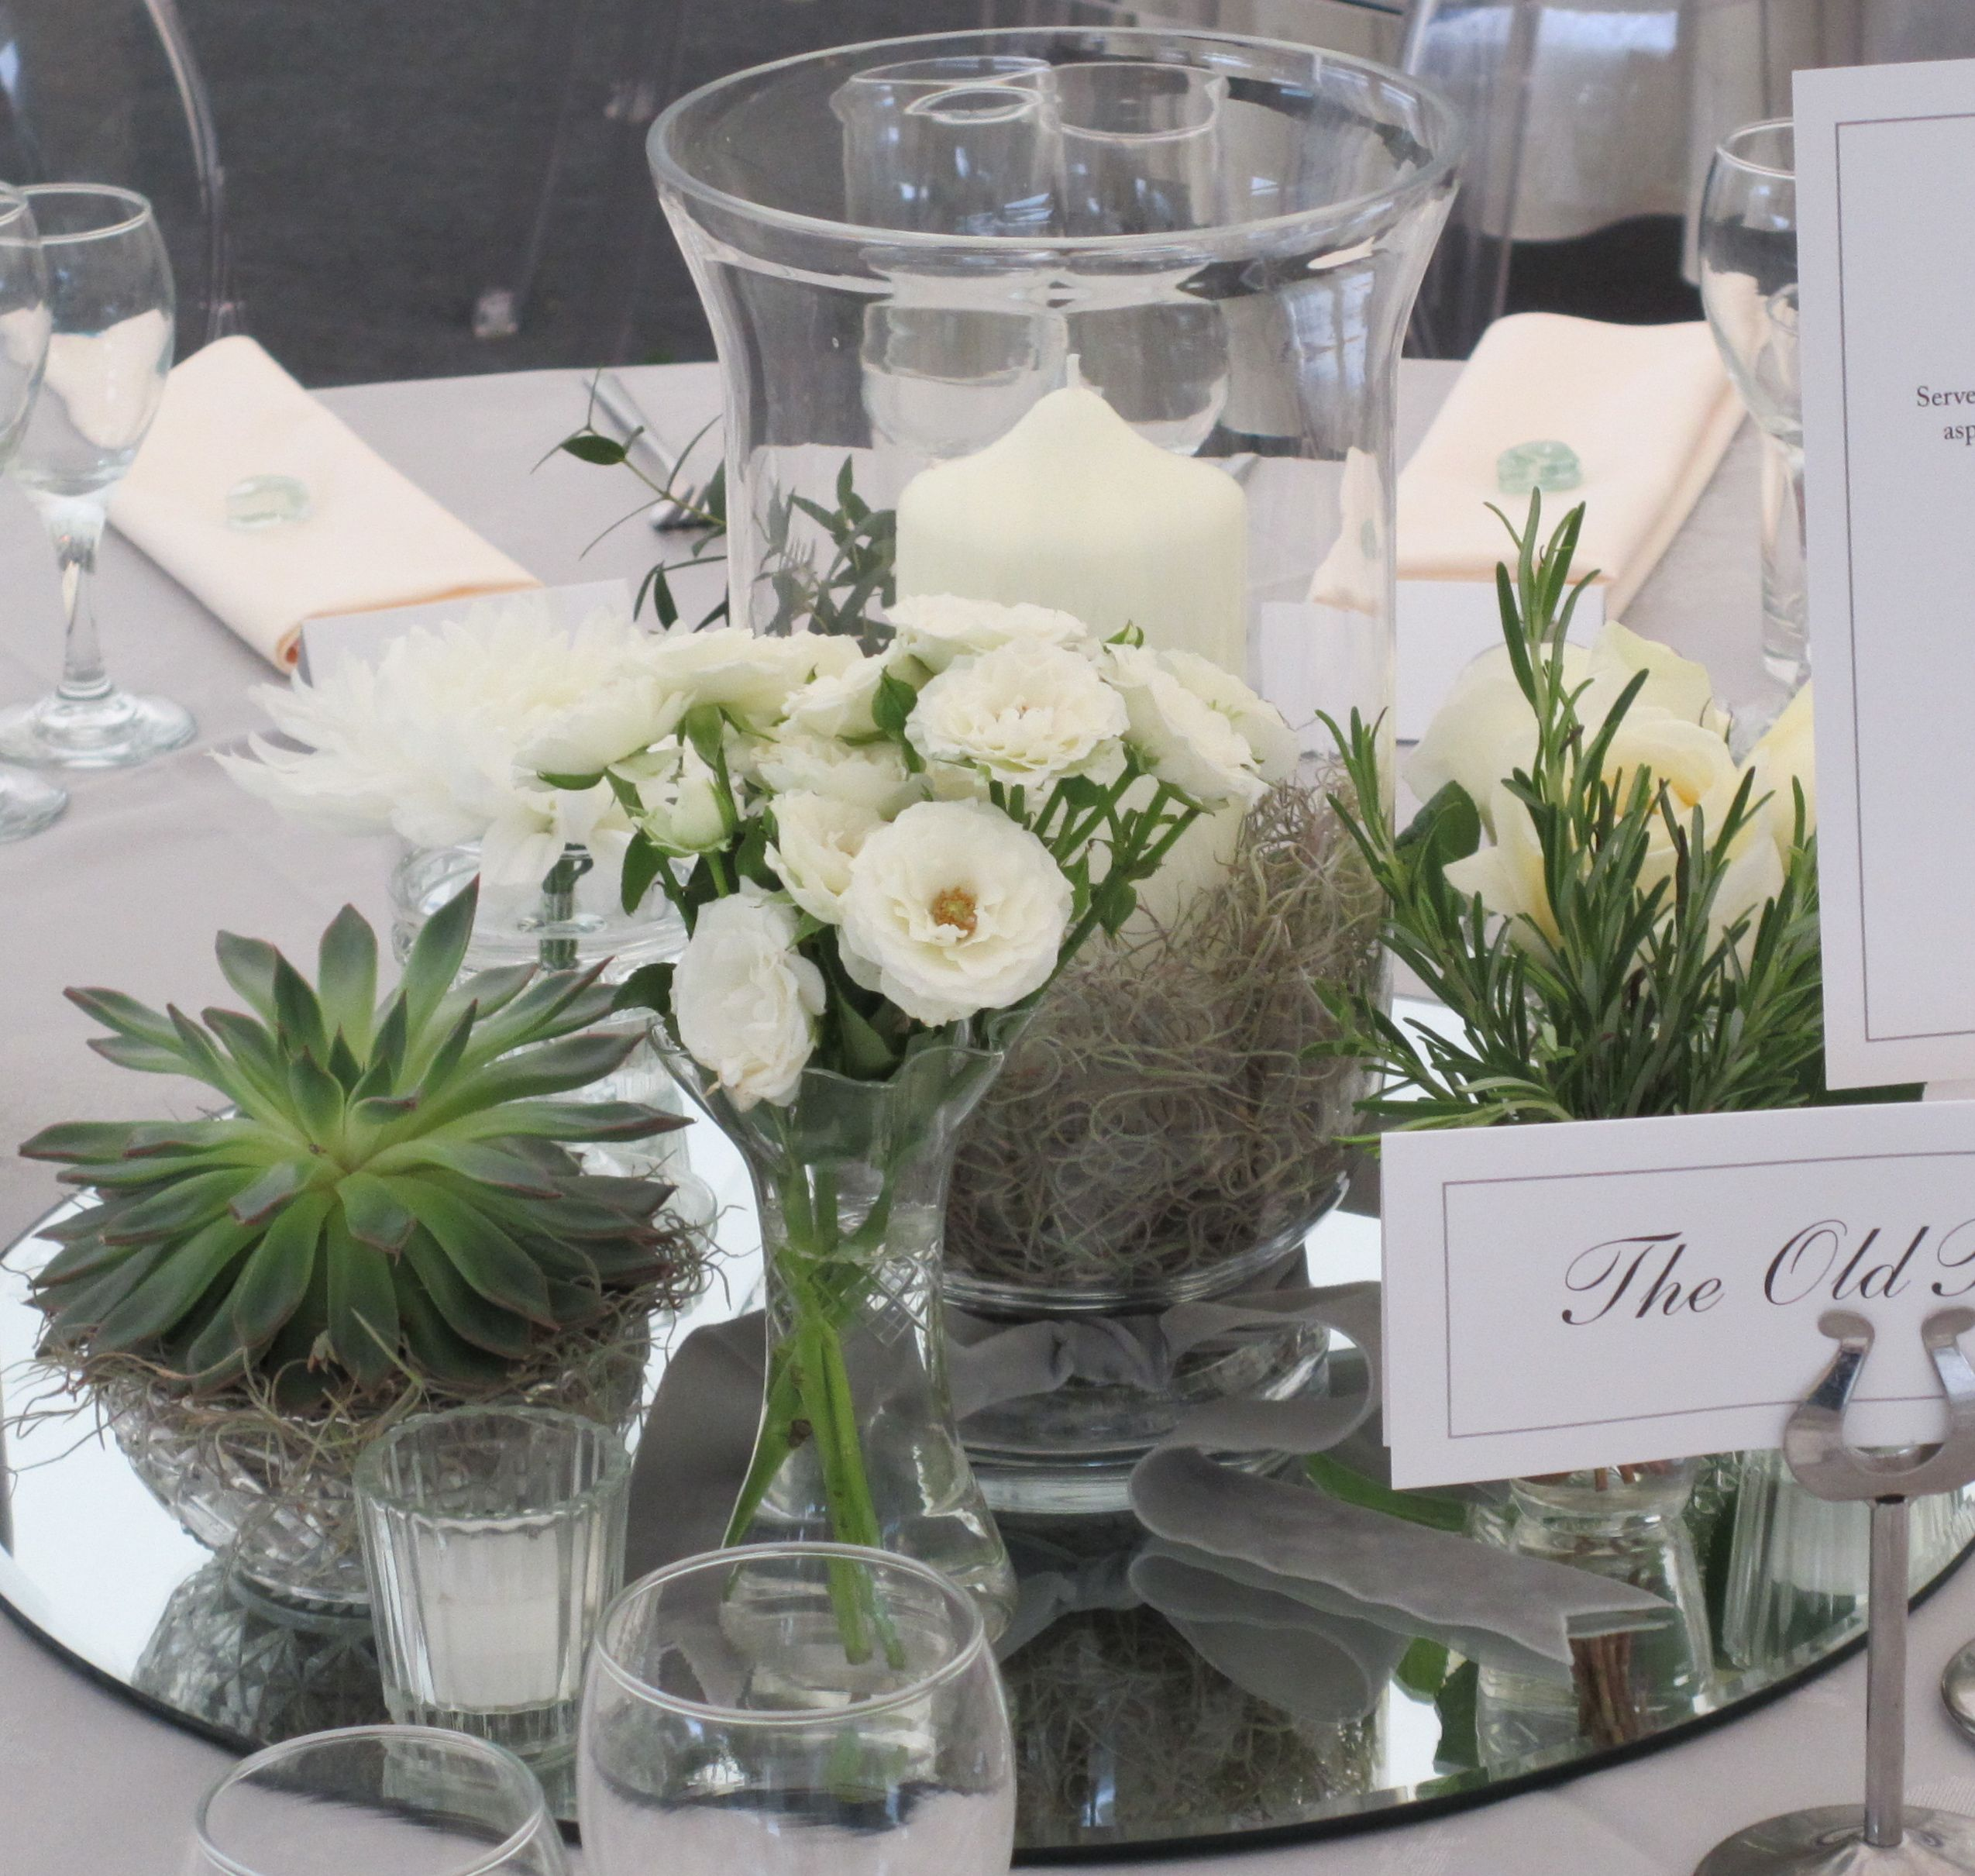 Table Decoration With Mirror Glass, Succulents, Storm Lantern And Grey